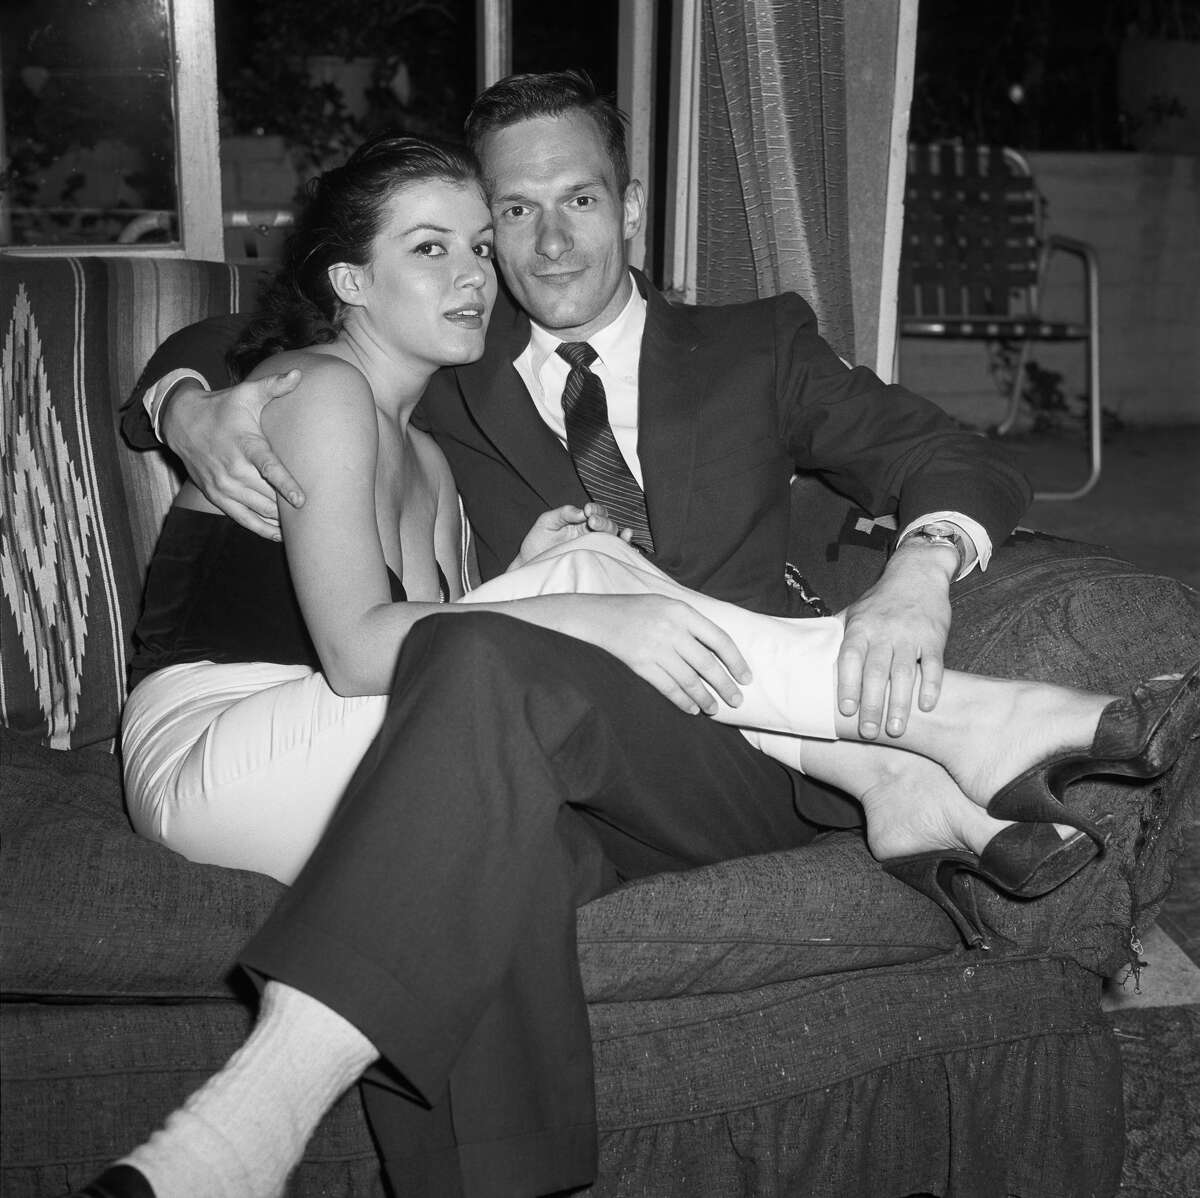 June 30, 1957, California, Hollywood, Hugh Hefner (with Joan Bardshaw) at a Playboy Party at the home of photographer Earl Leaf.